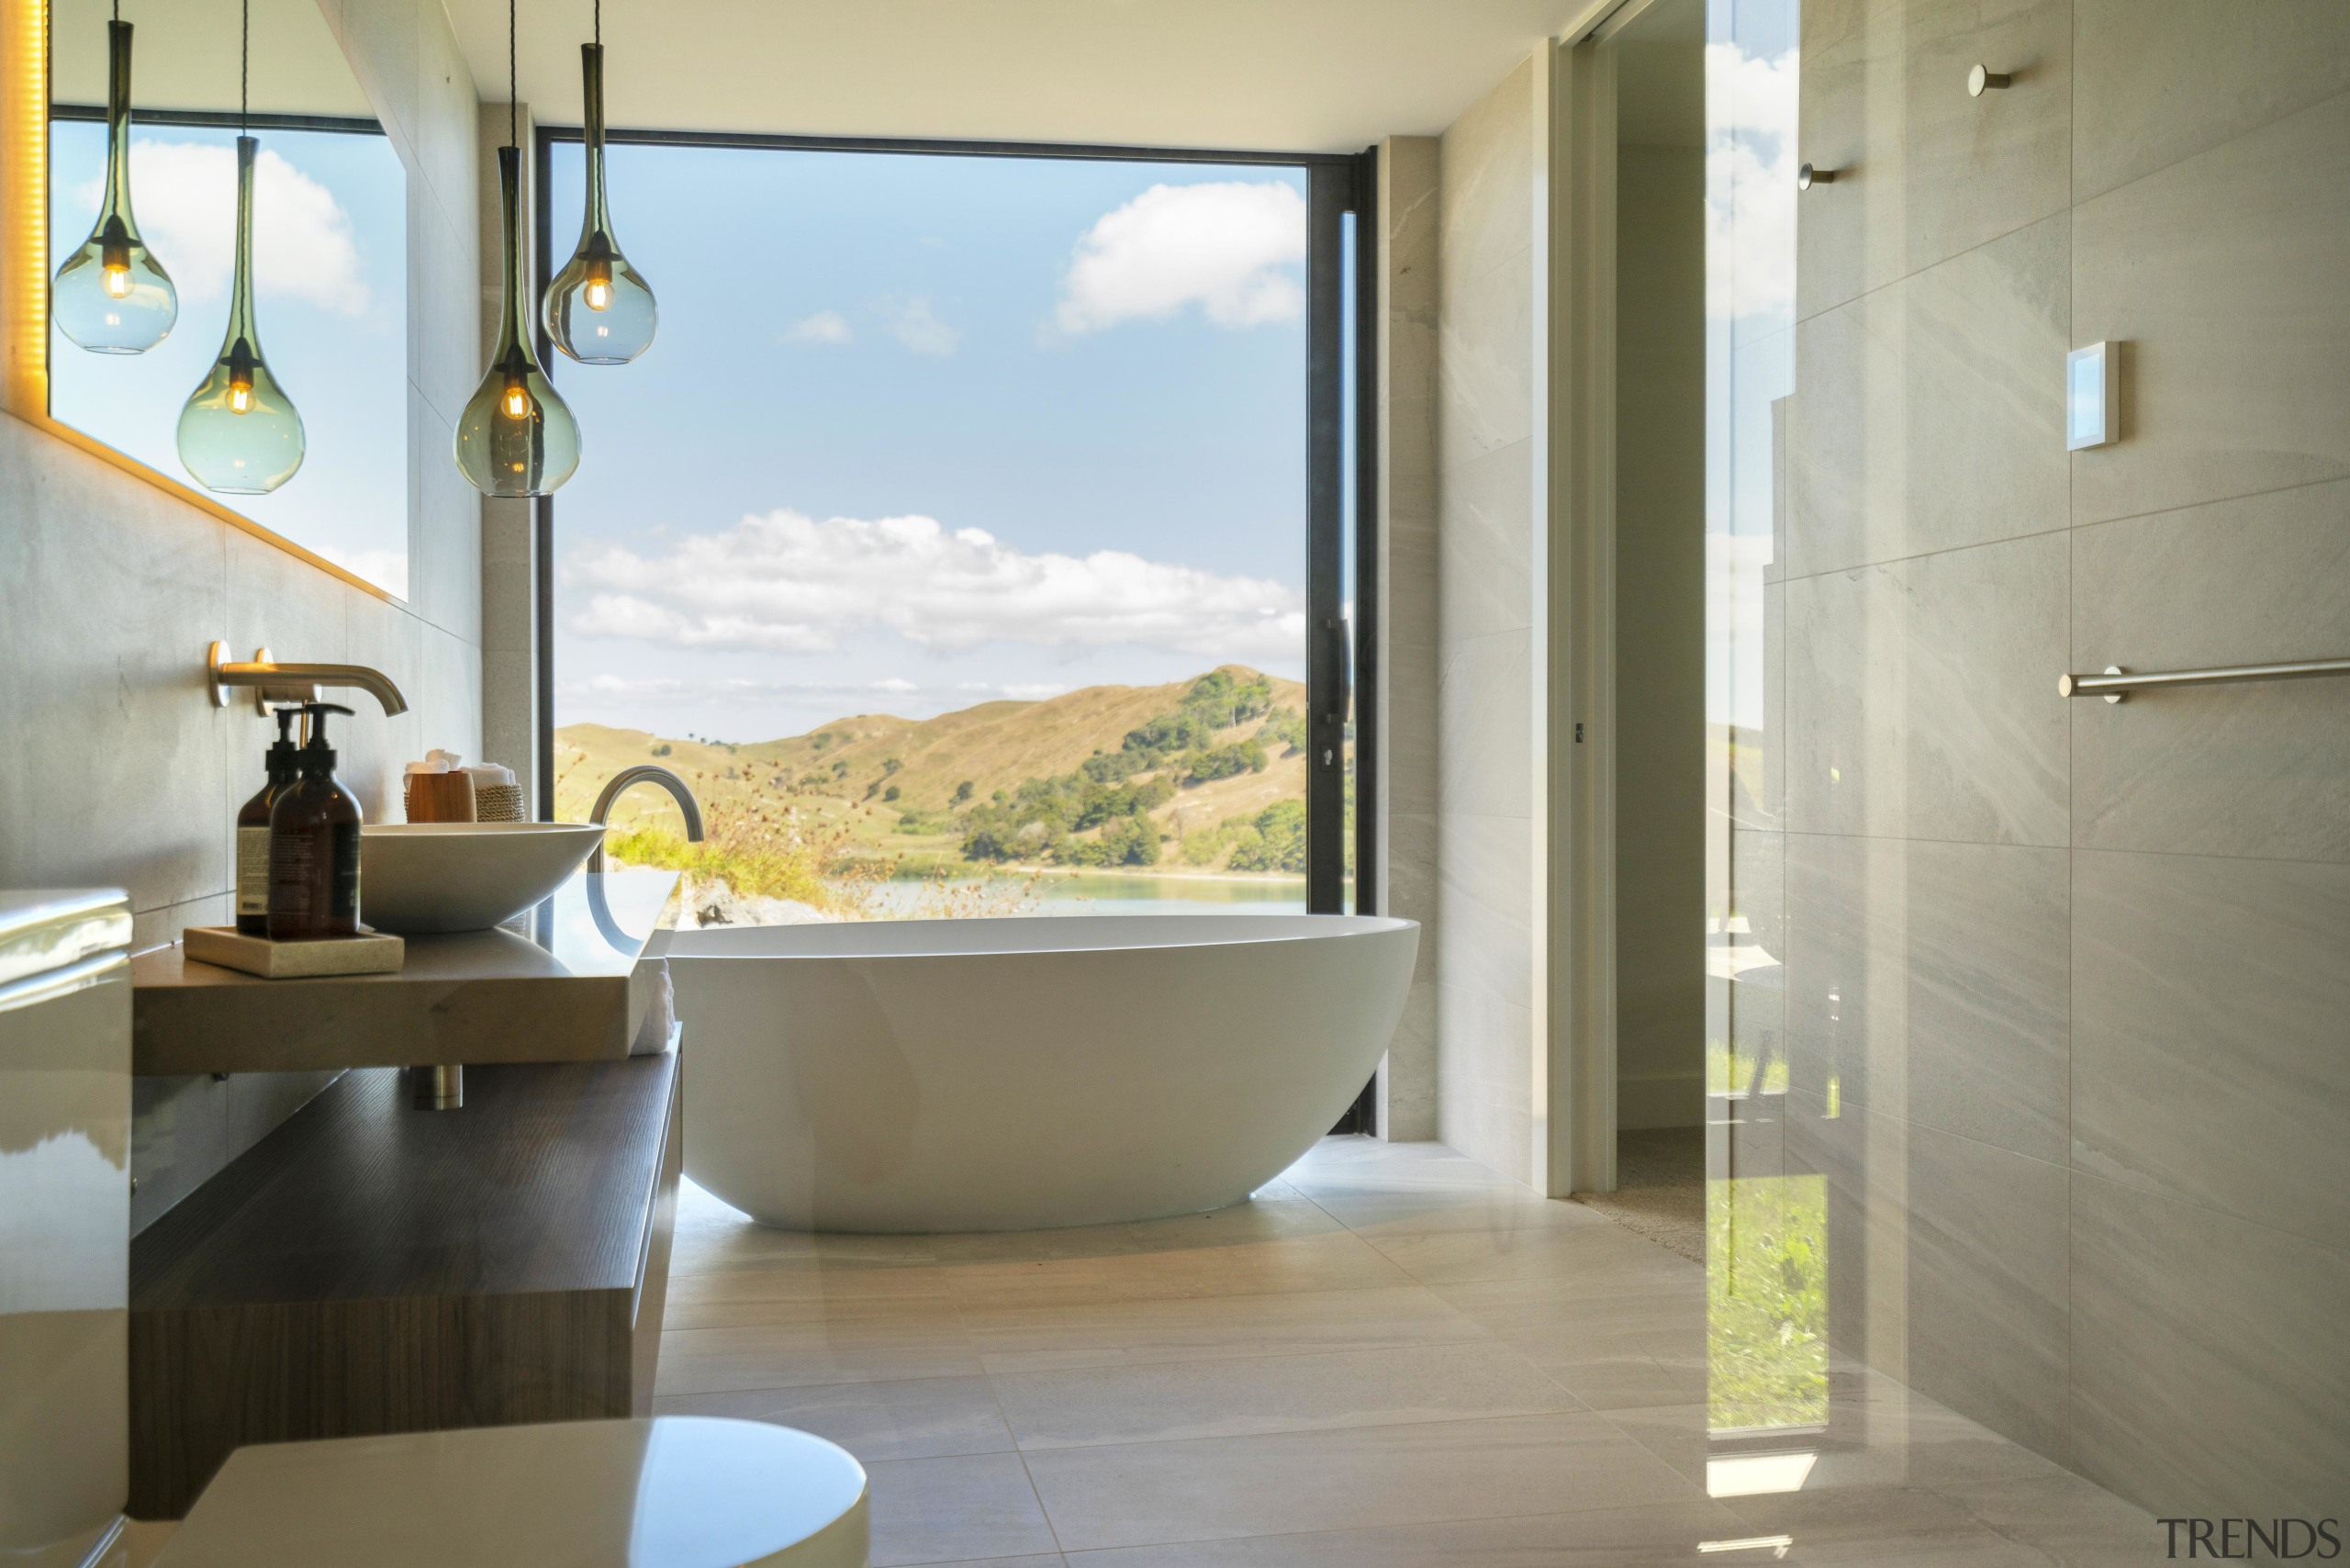 In this master ensuite blessed with spectacular views, gray